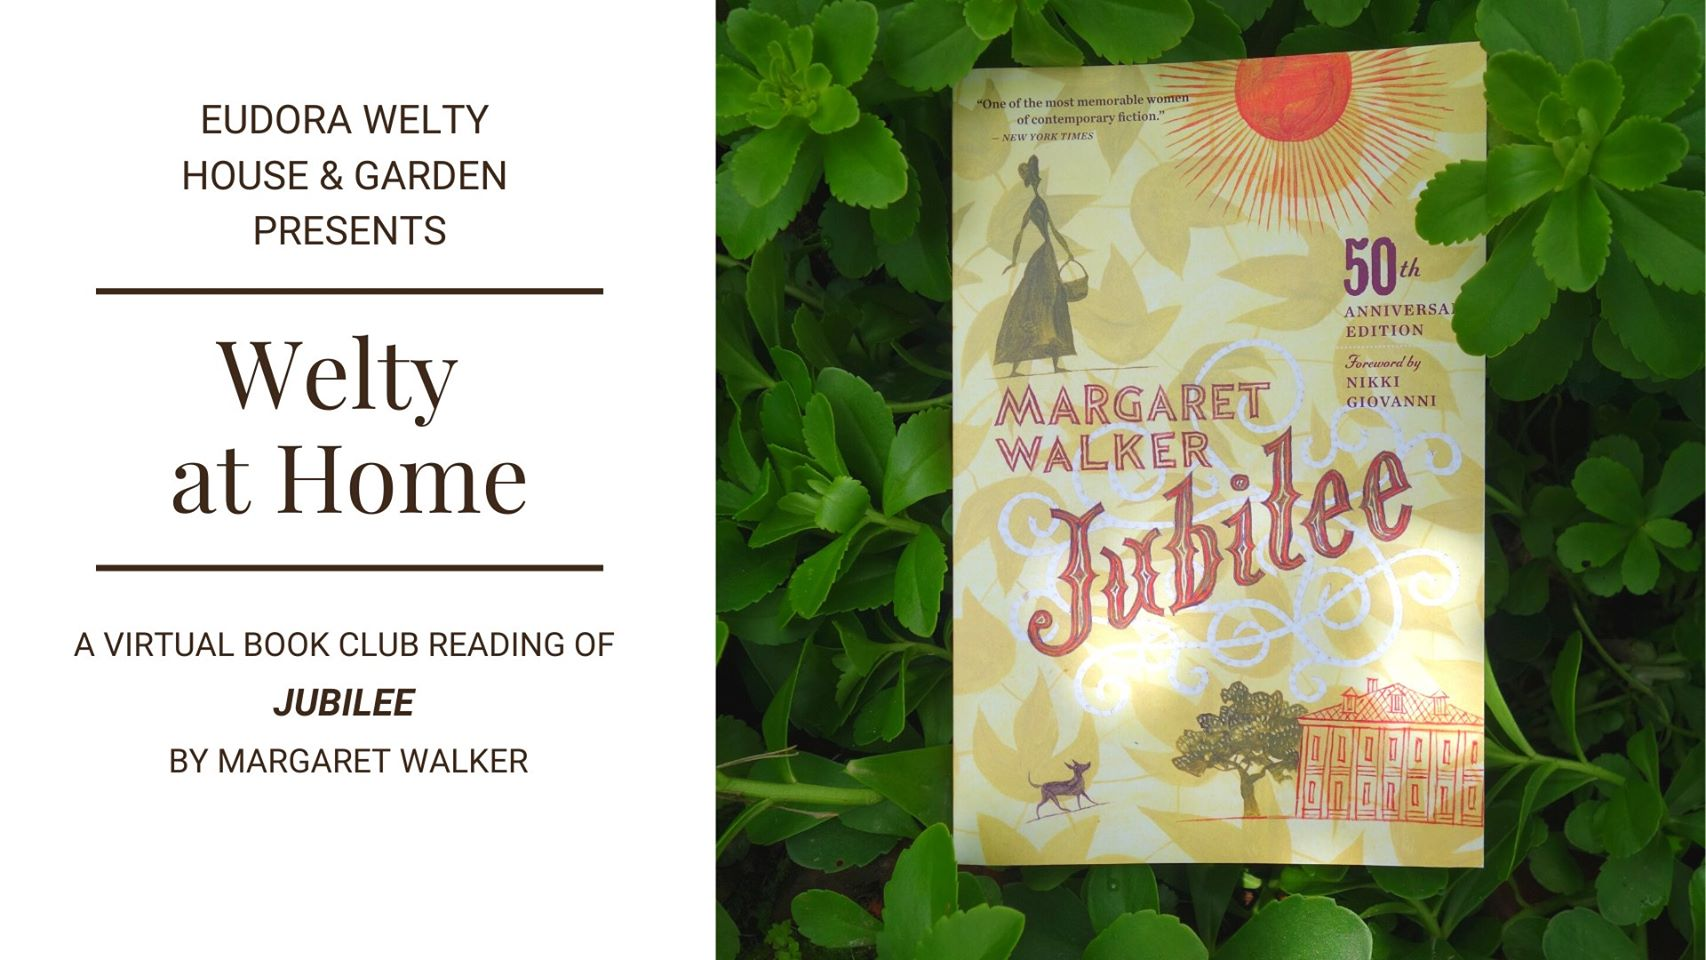 Cover of Jubilee book by Margaret Walker framed by greenery next to text graphic of book club details